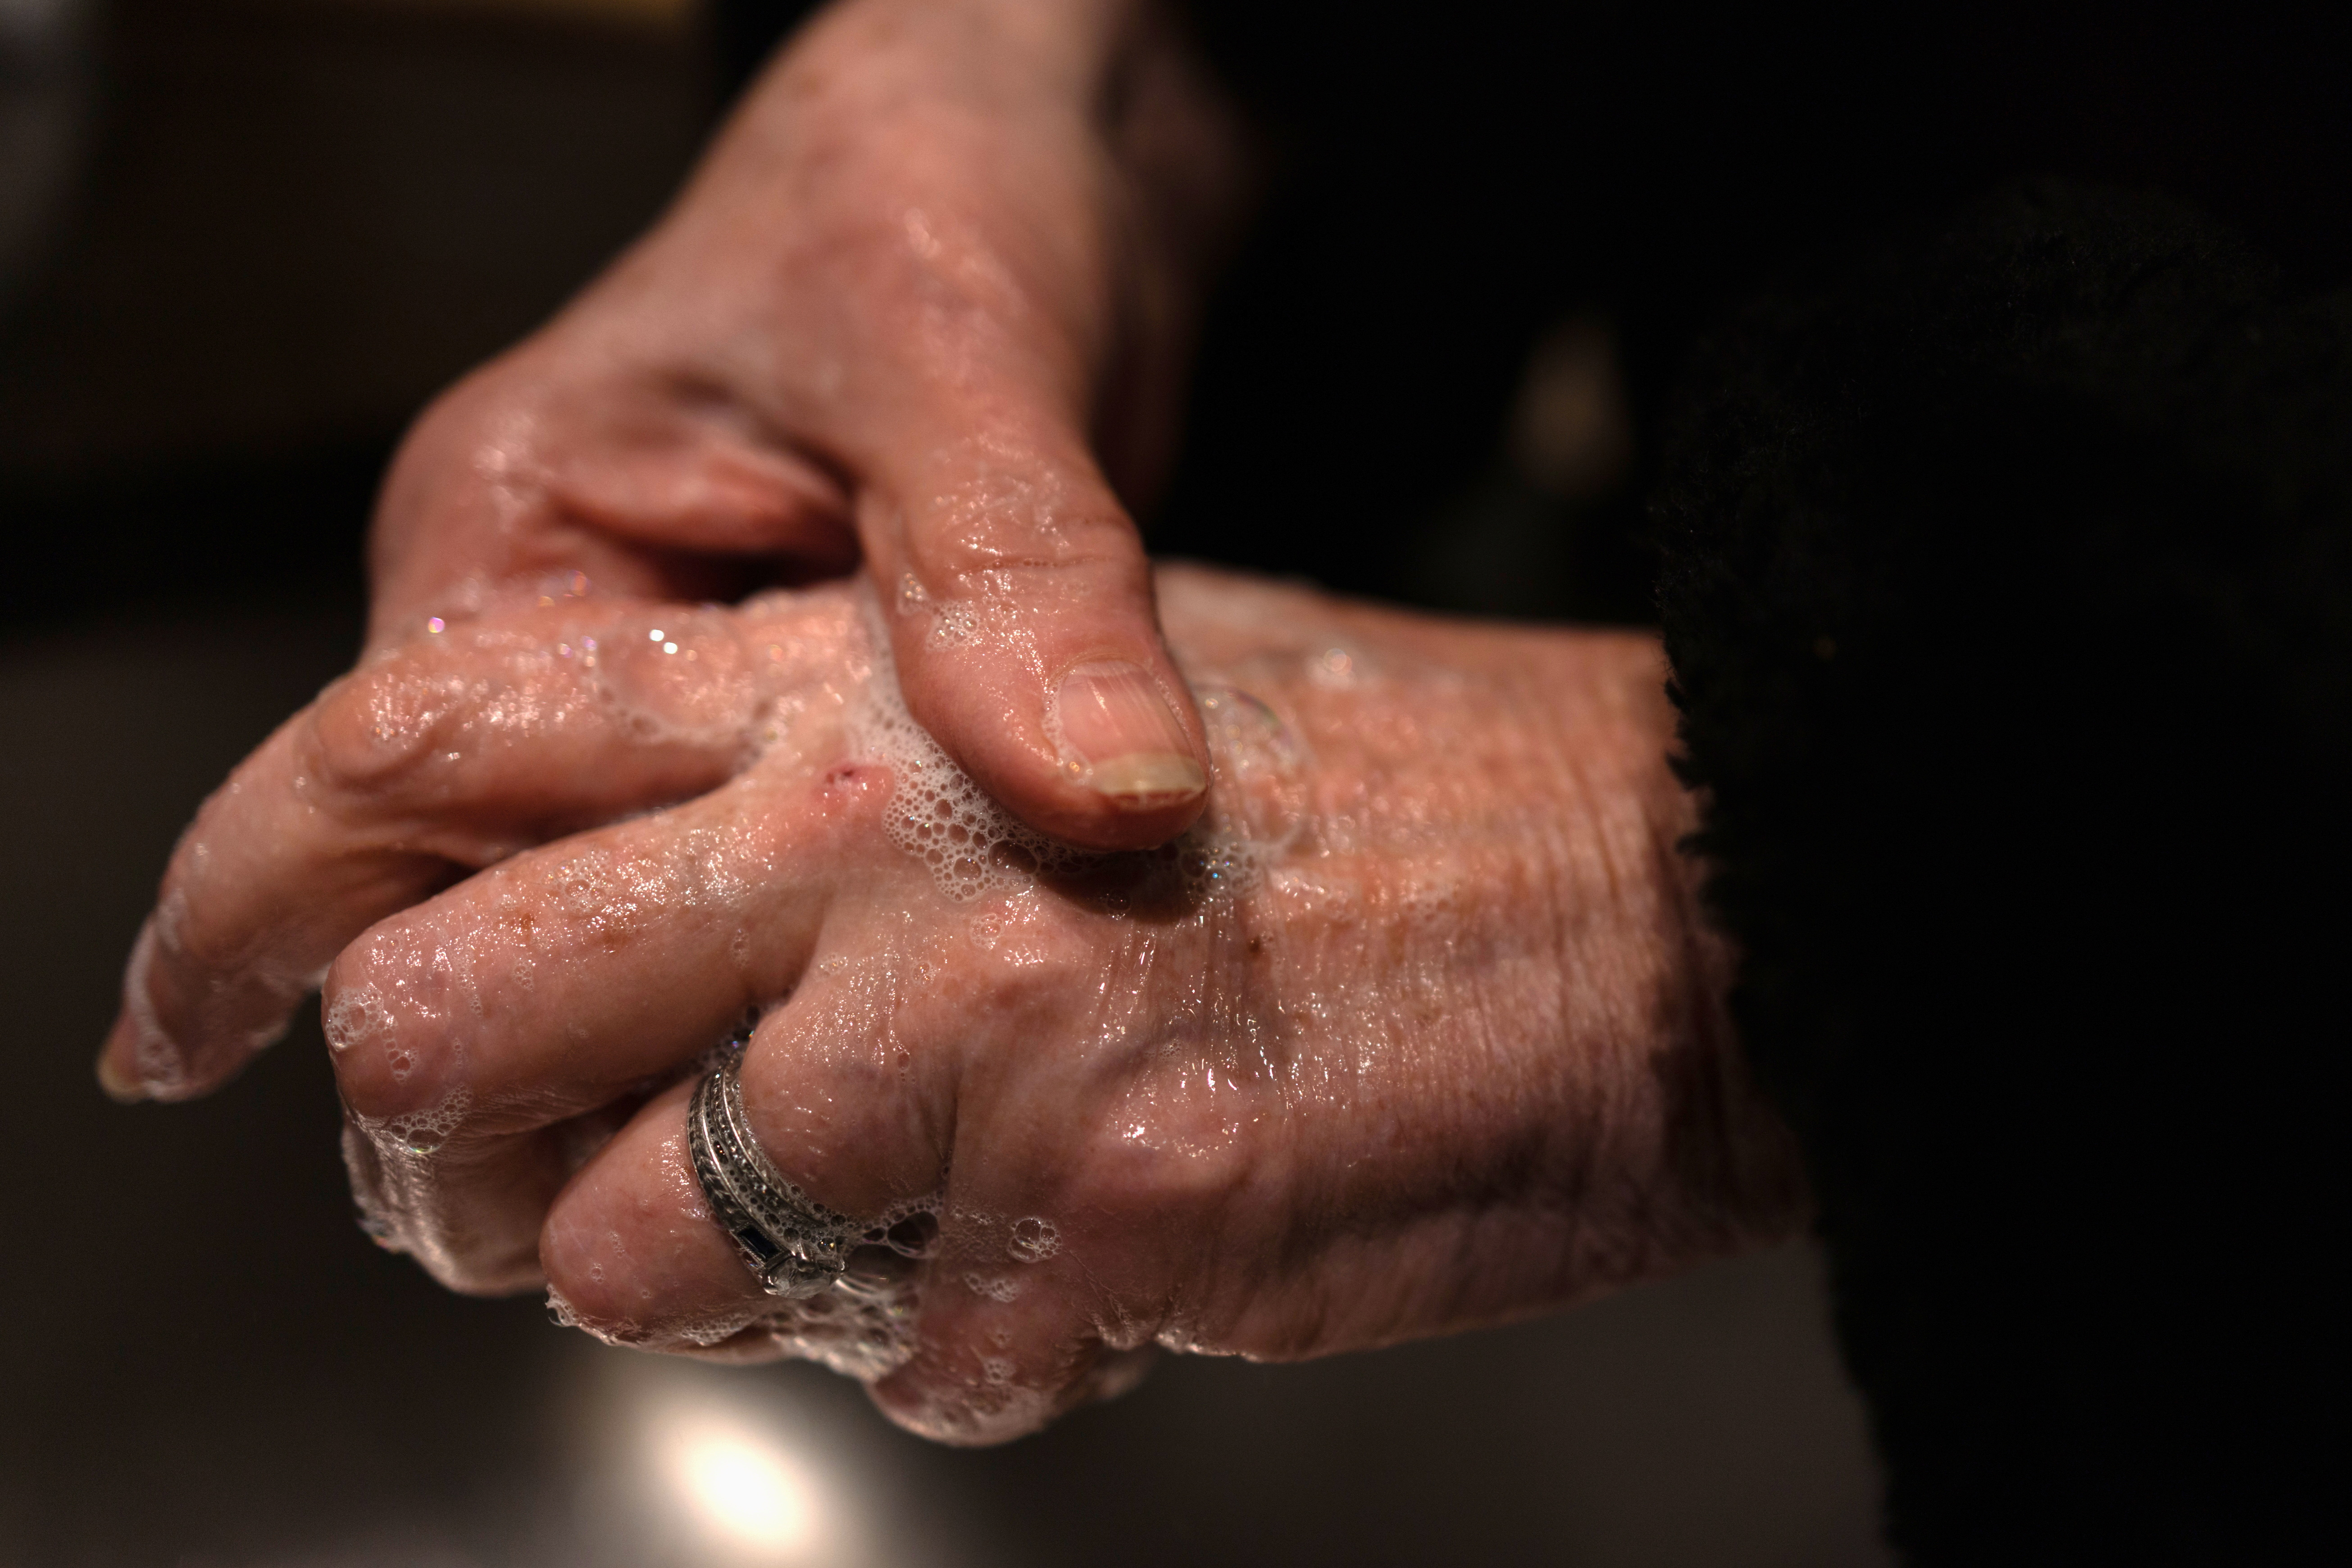 Penny Parkin, 69, who was exposed to COVID-19 on March 23, 2020, washes her hands after visiting her doctor for tests as she continues to suffer from long term effects of the coronavirus disease in Doylestown, Pennsylvania, U.S., March 17, 2021.  REUTERS/Hannah Beier